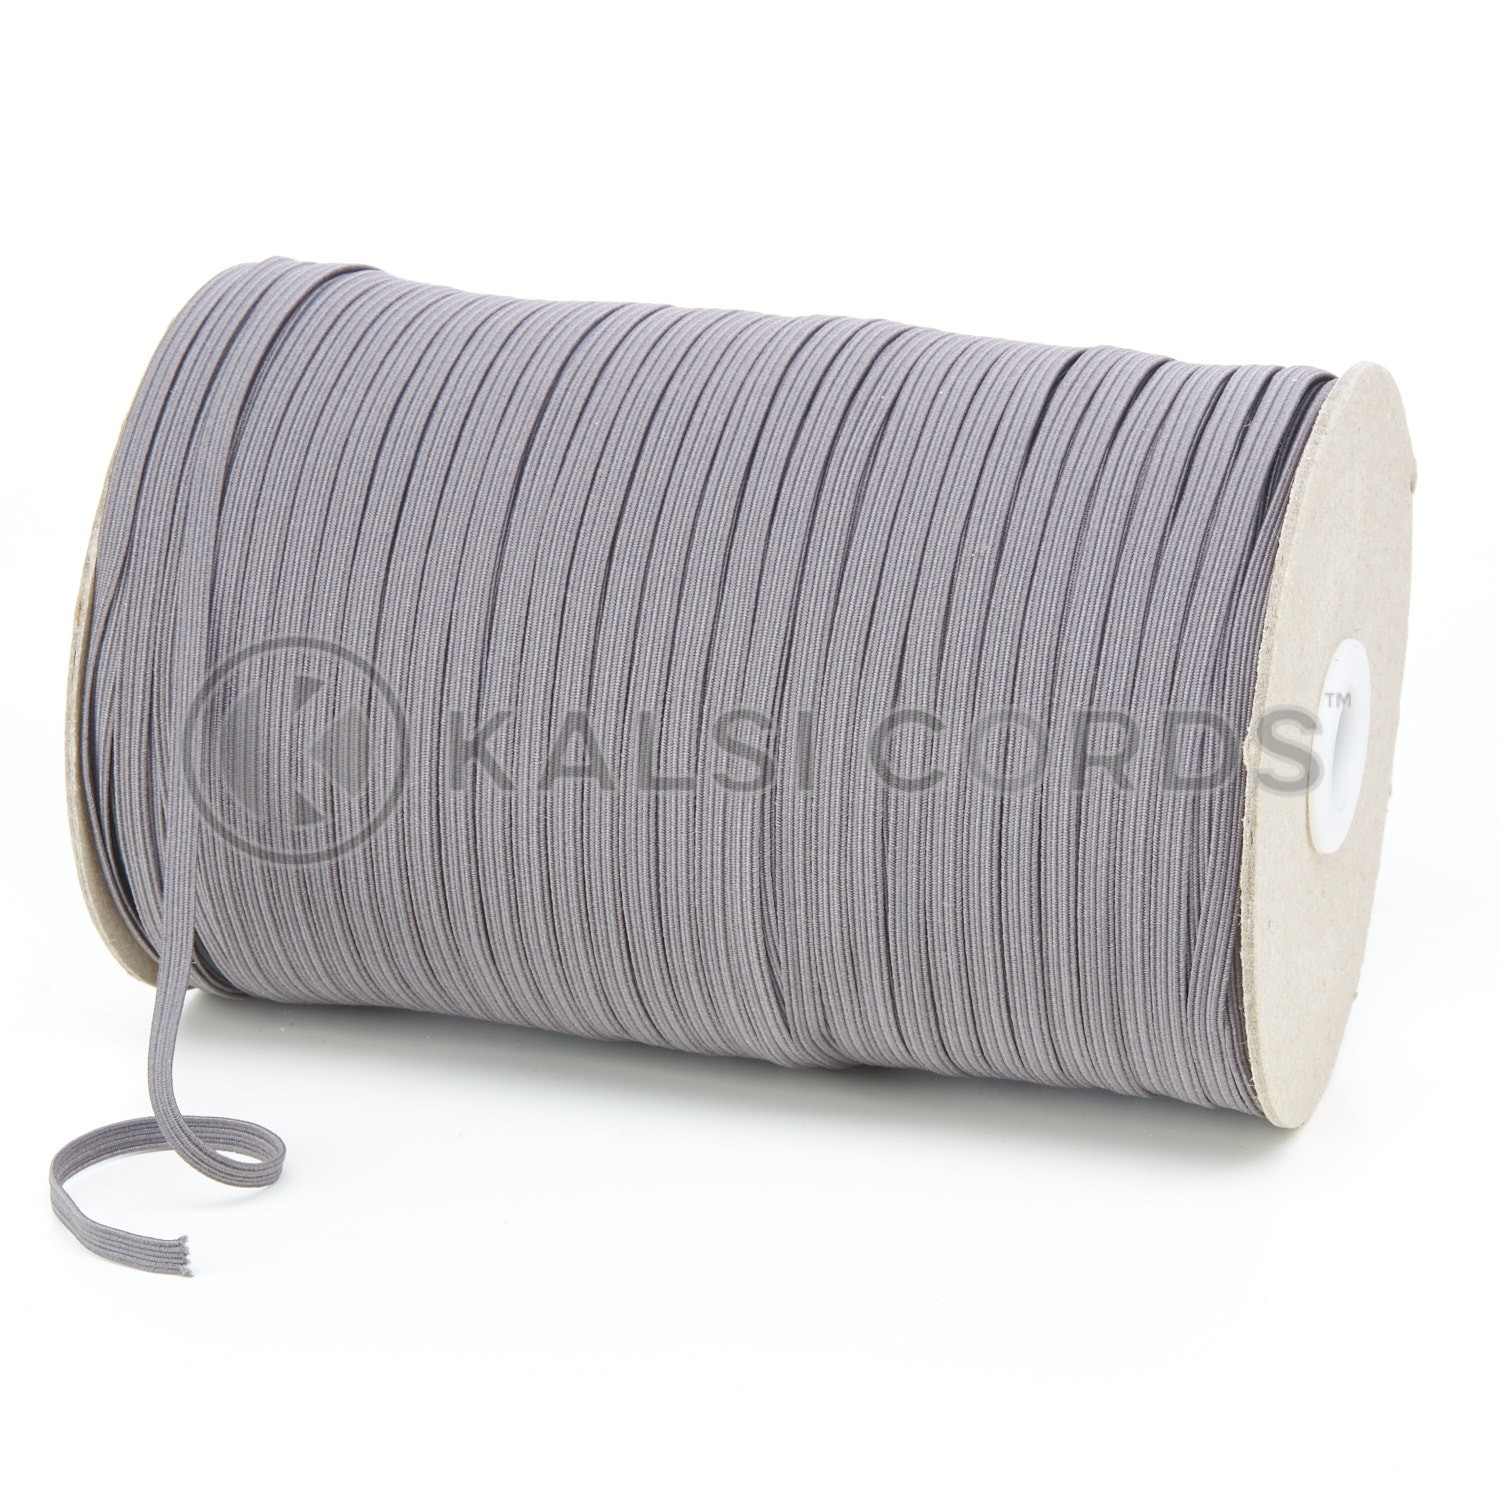 Grey 4mm 6 Cord Flat Braided Elastic Roll Sewing Face Masks TPE10 Kalsi Cords